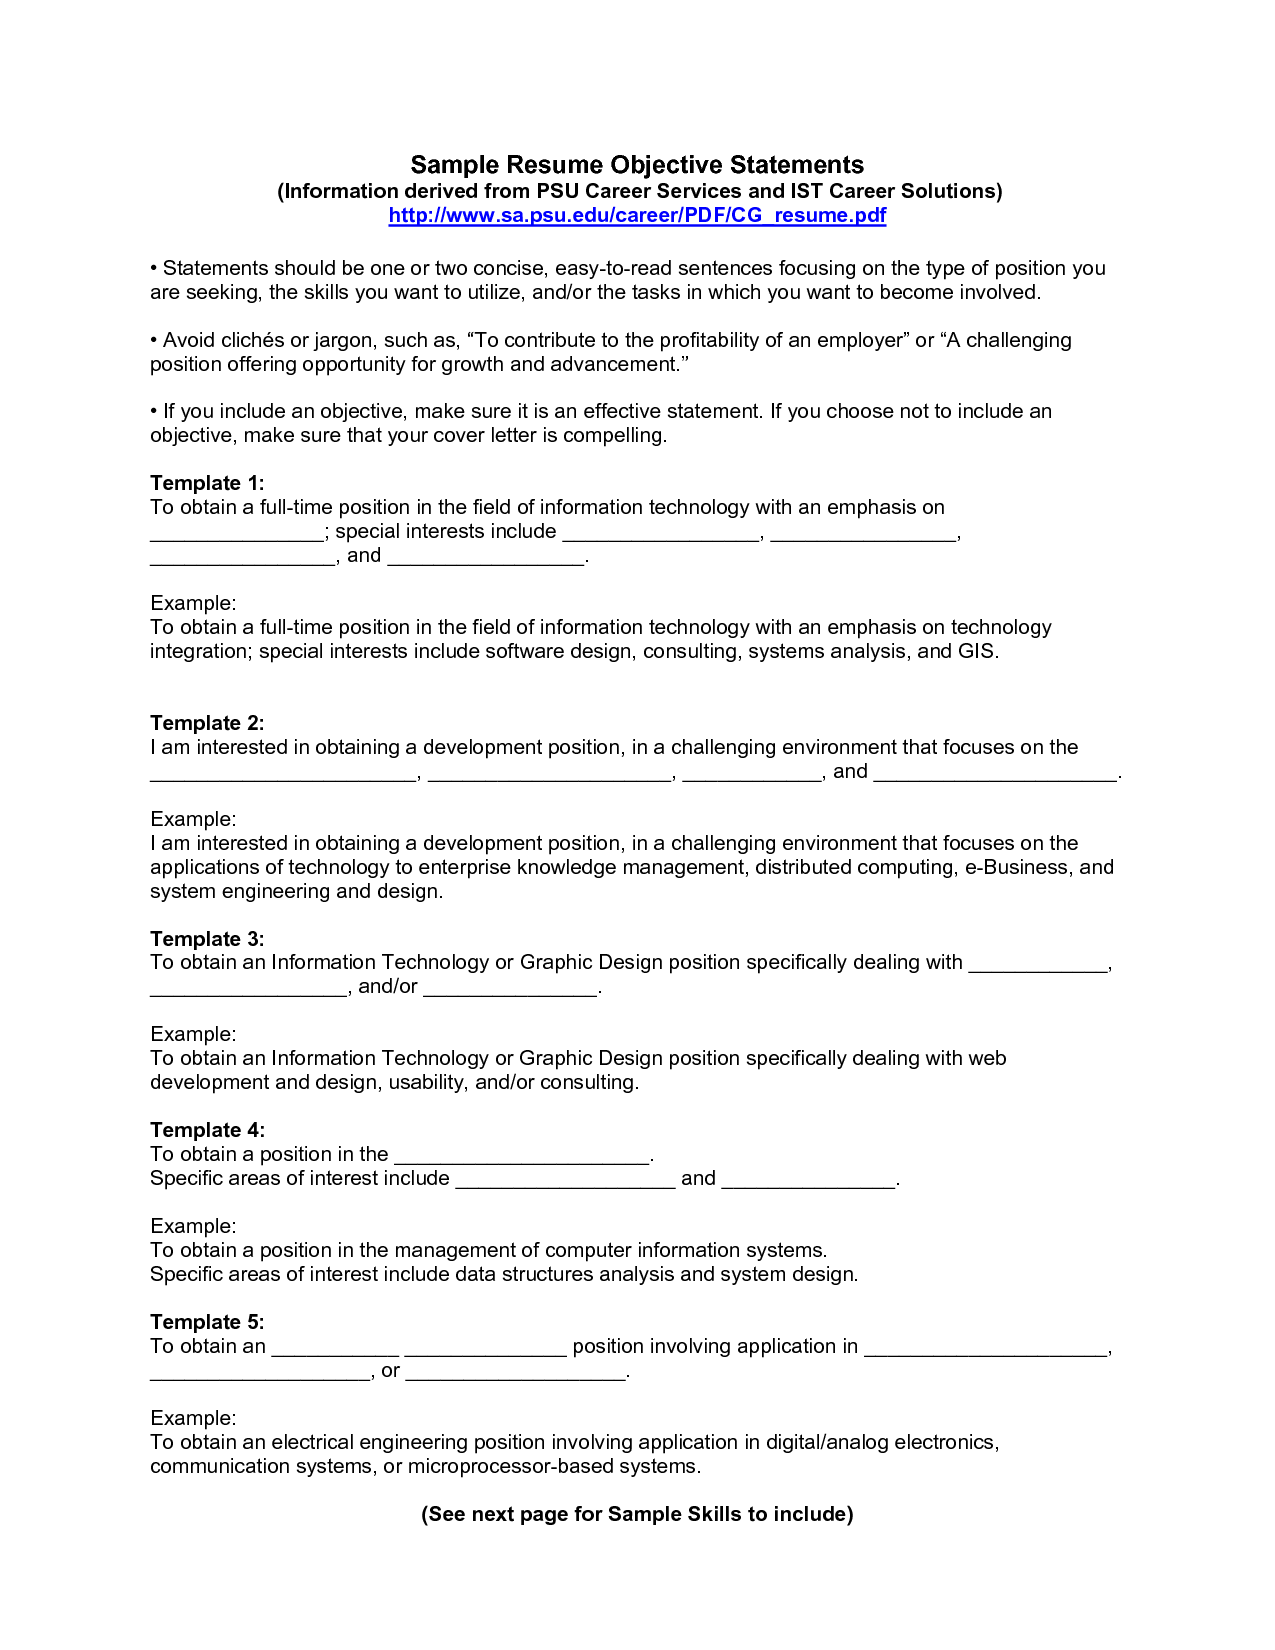 Areas Of Expertise Resume Examples Resume Objective Statement For Teacher  Httpwww.resumecareer .